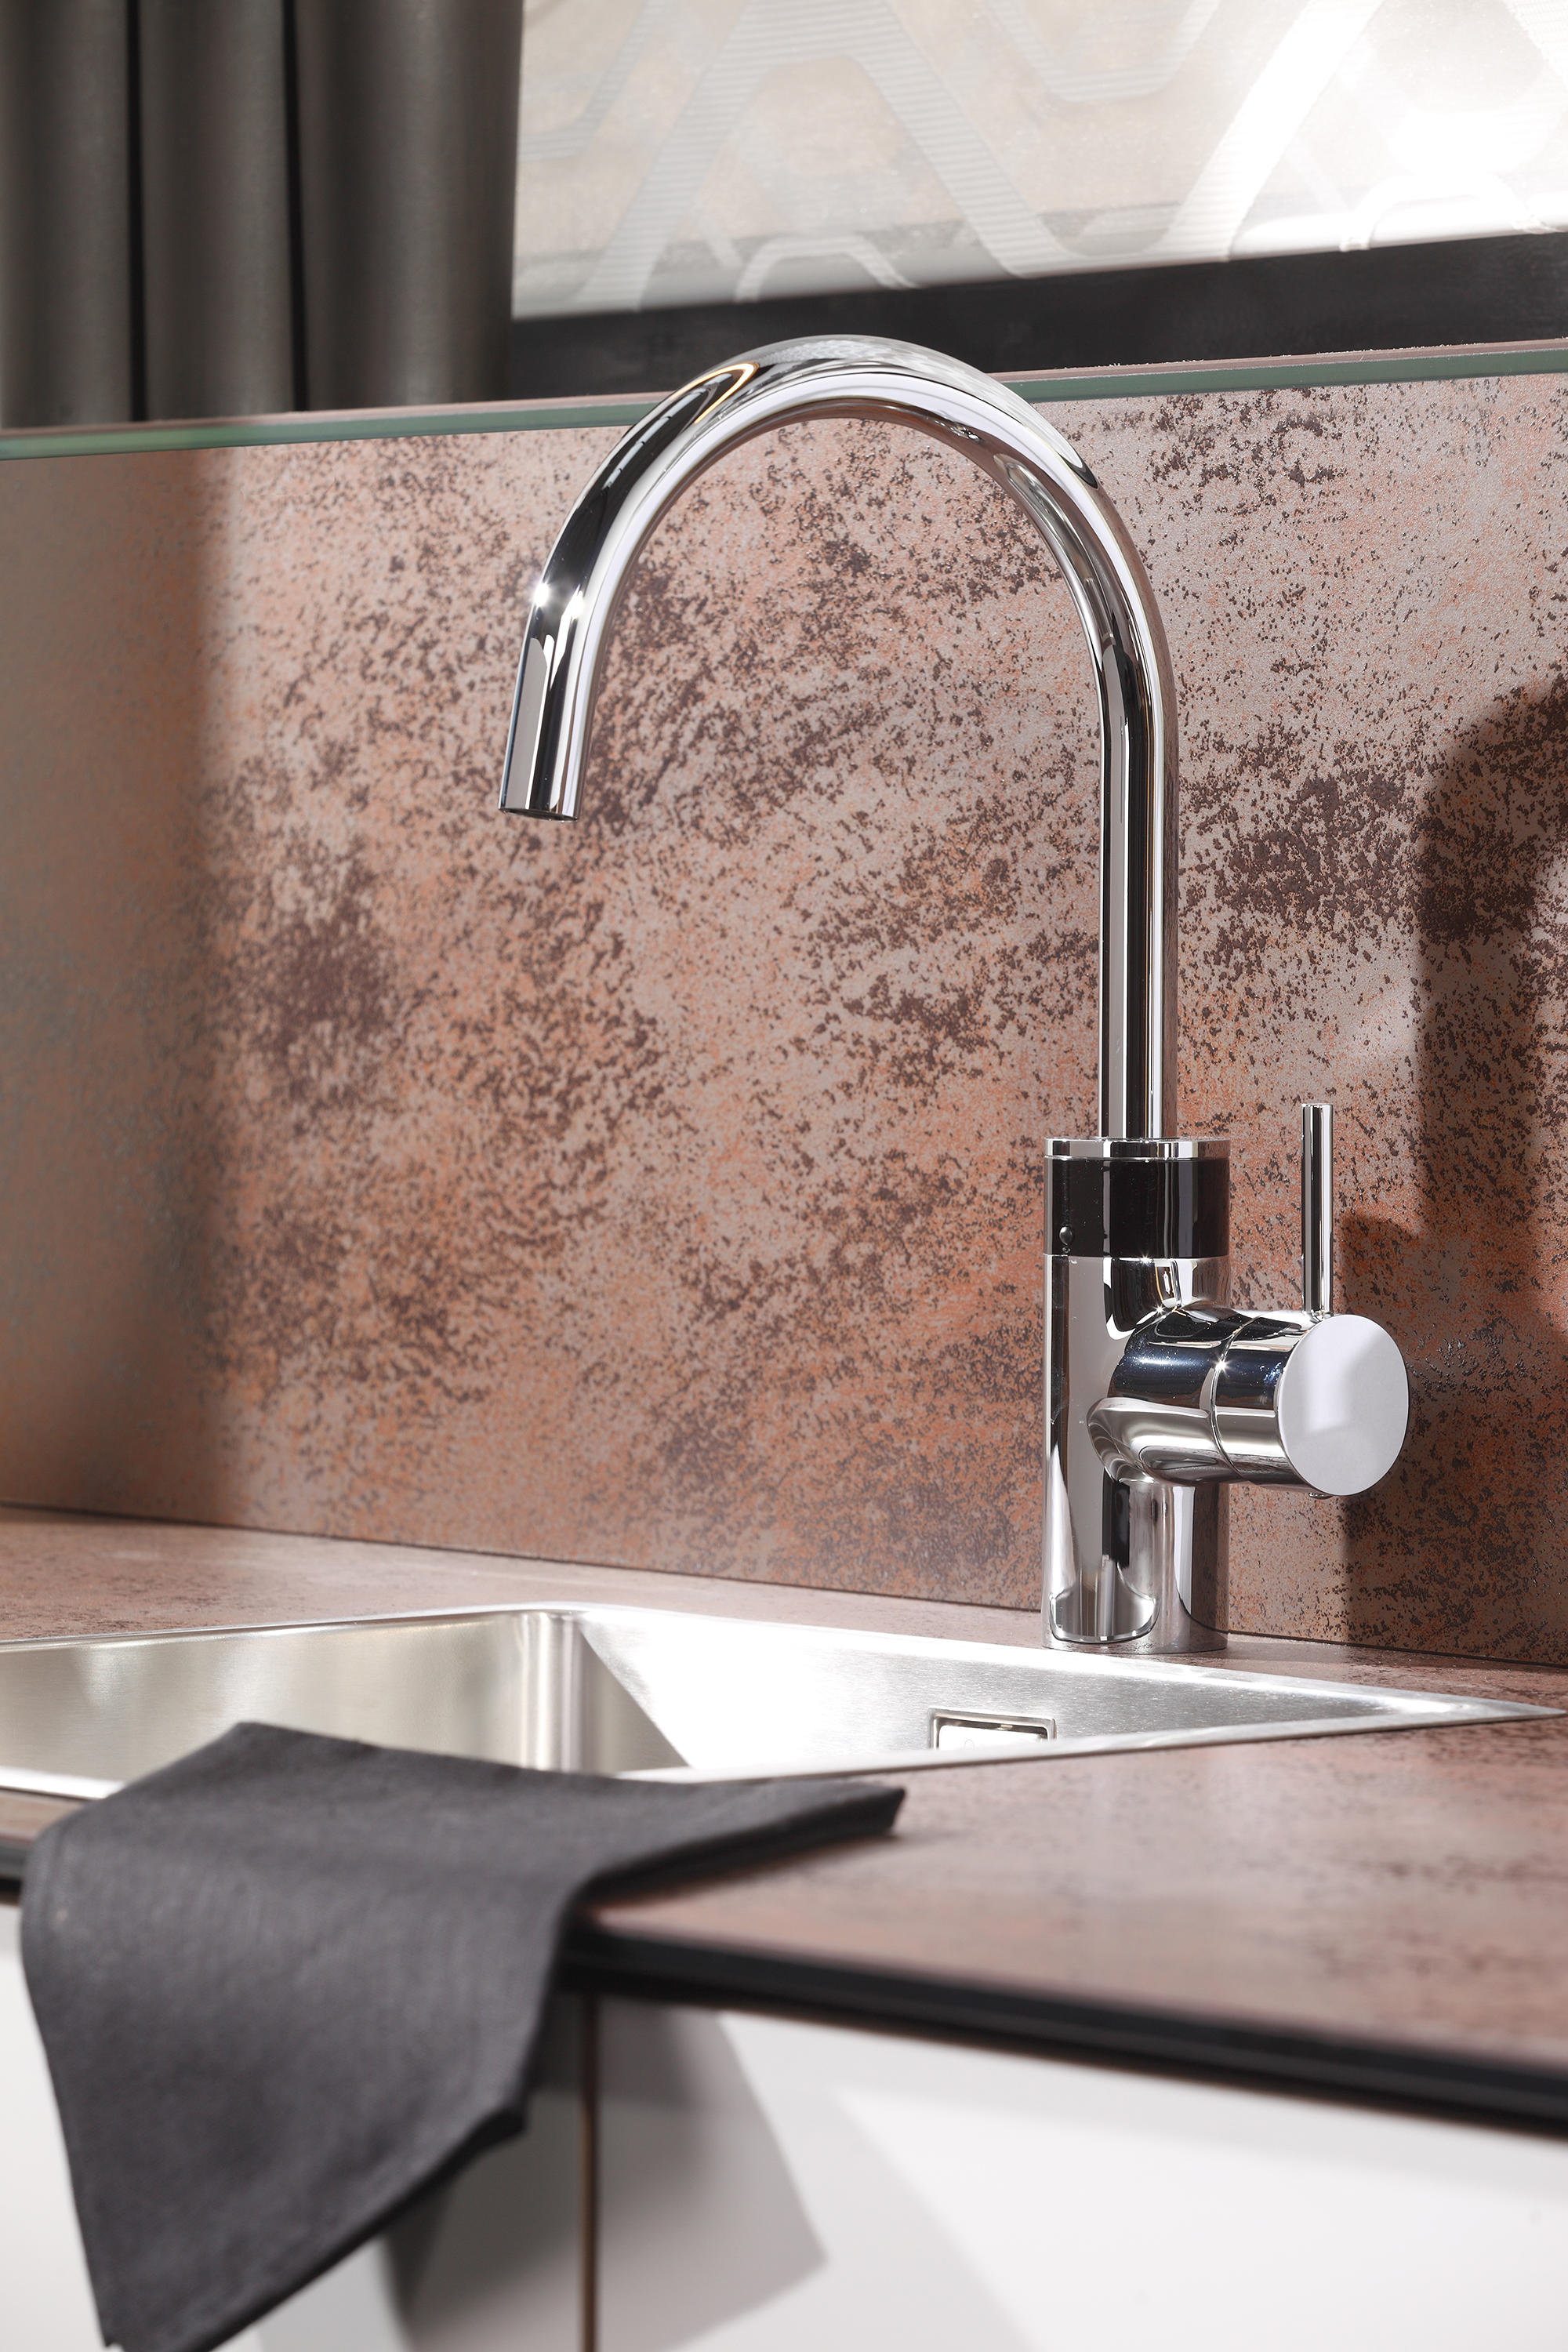 H10 Hybrid Kitchen Faucet Battery Kitchen Taps From Conti